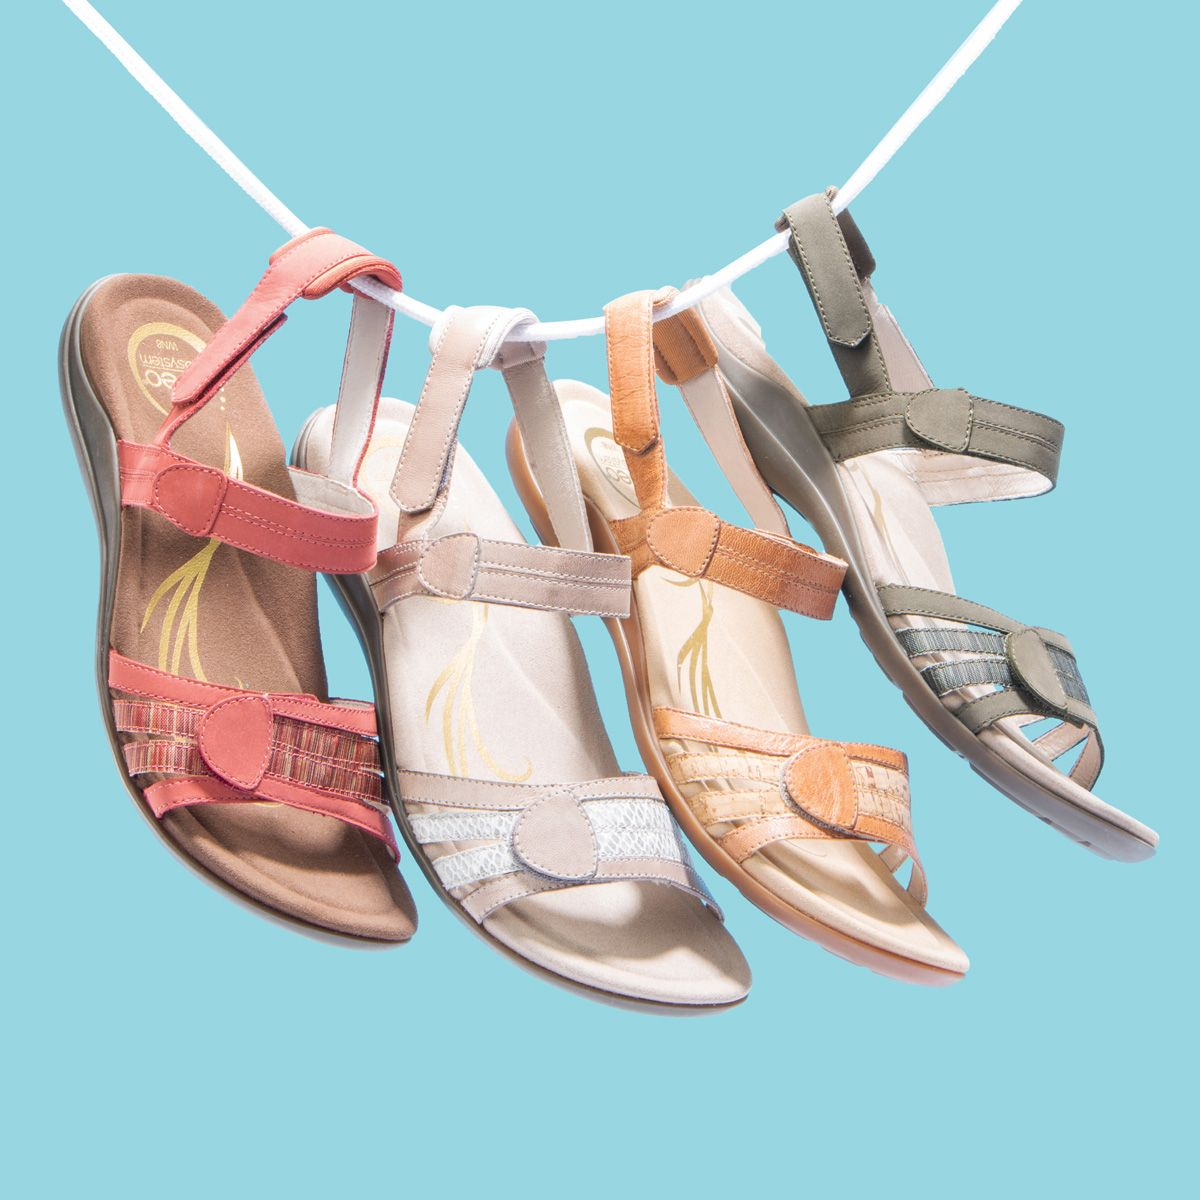 Three Way Adjustable Straps Make The Abeo Brynn A Perfect Sandal Comfort Option Womens Sandals Sandals Comfortable Shoes